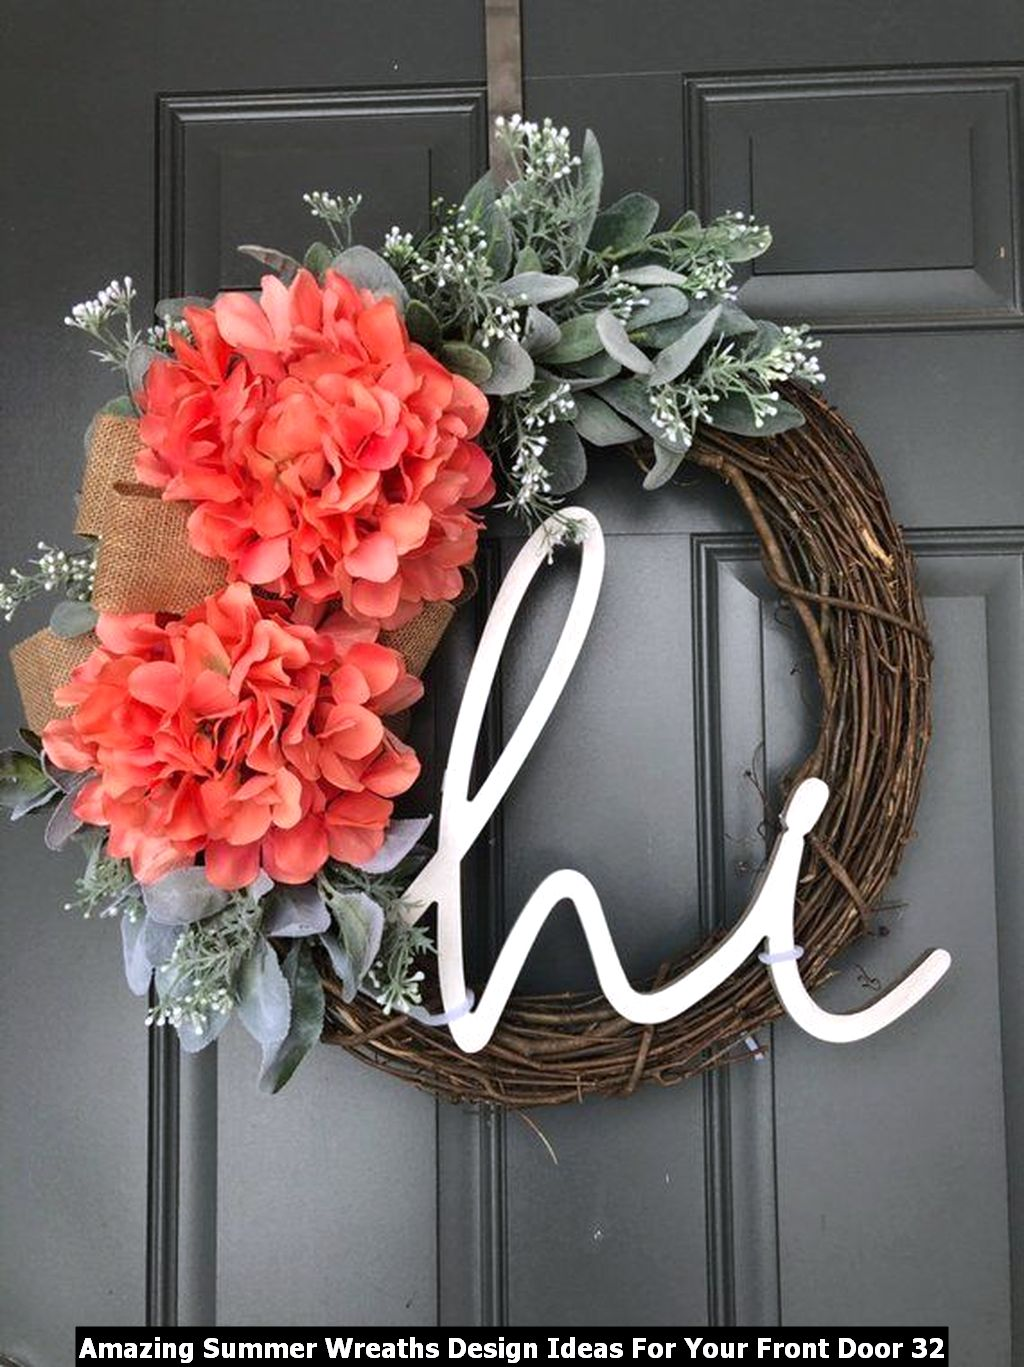 Amazing Summer Wreaths Design Ideas For Your Front Door 32